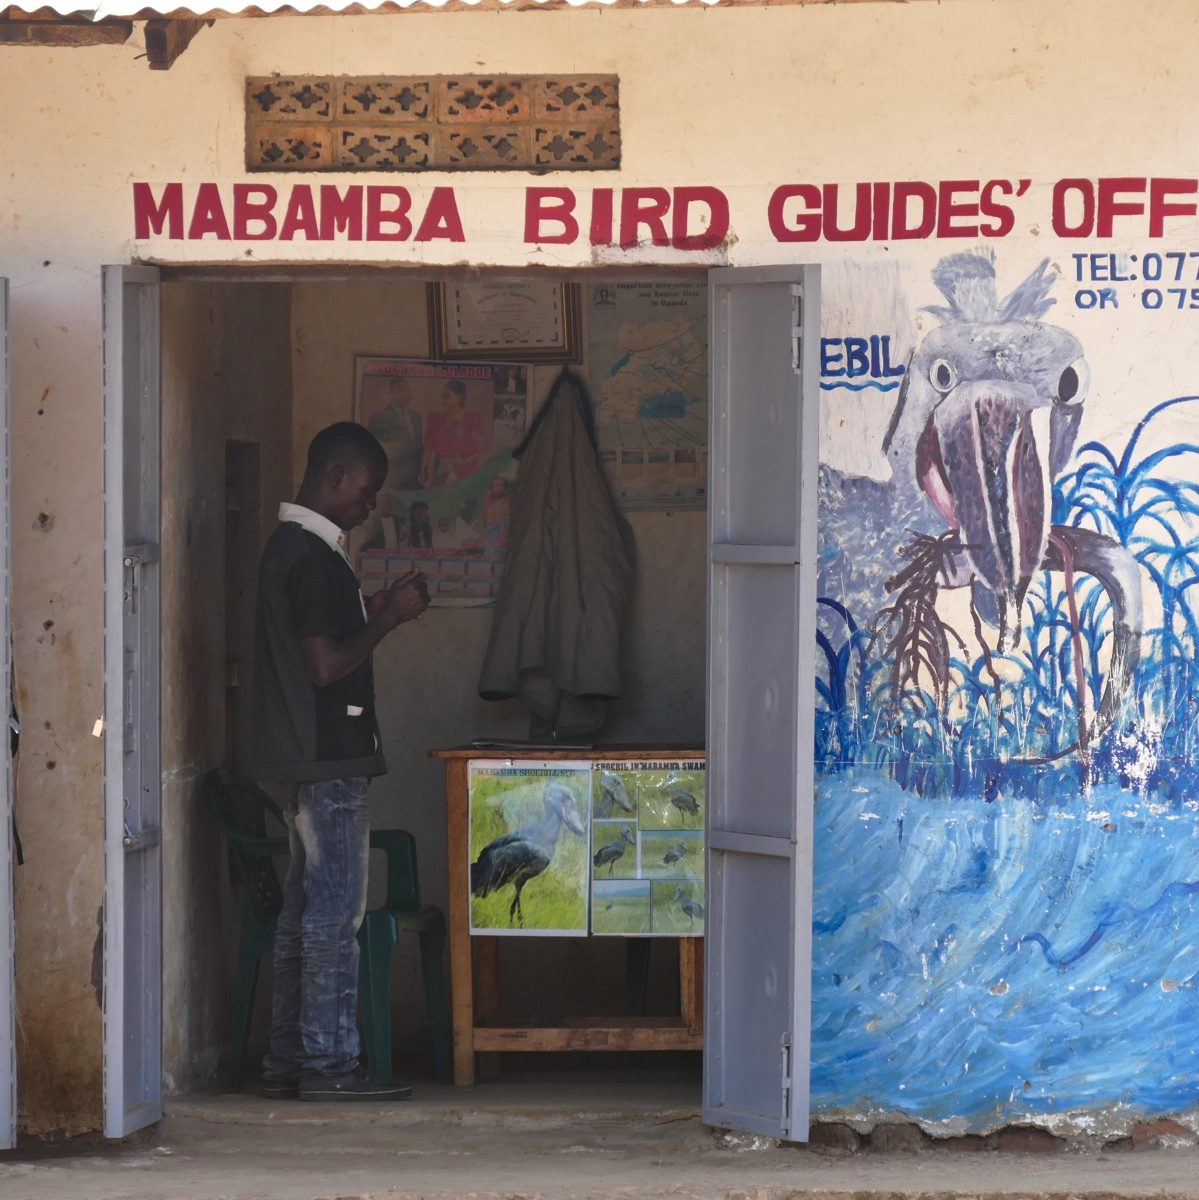 The boat operator's office at Mabamba features Shoebill artwork. The boat operator's office at Mabamba features Shoebill artwork. Noah Strycker